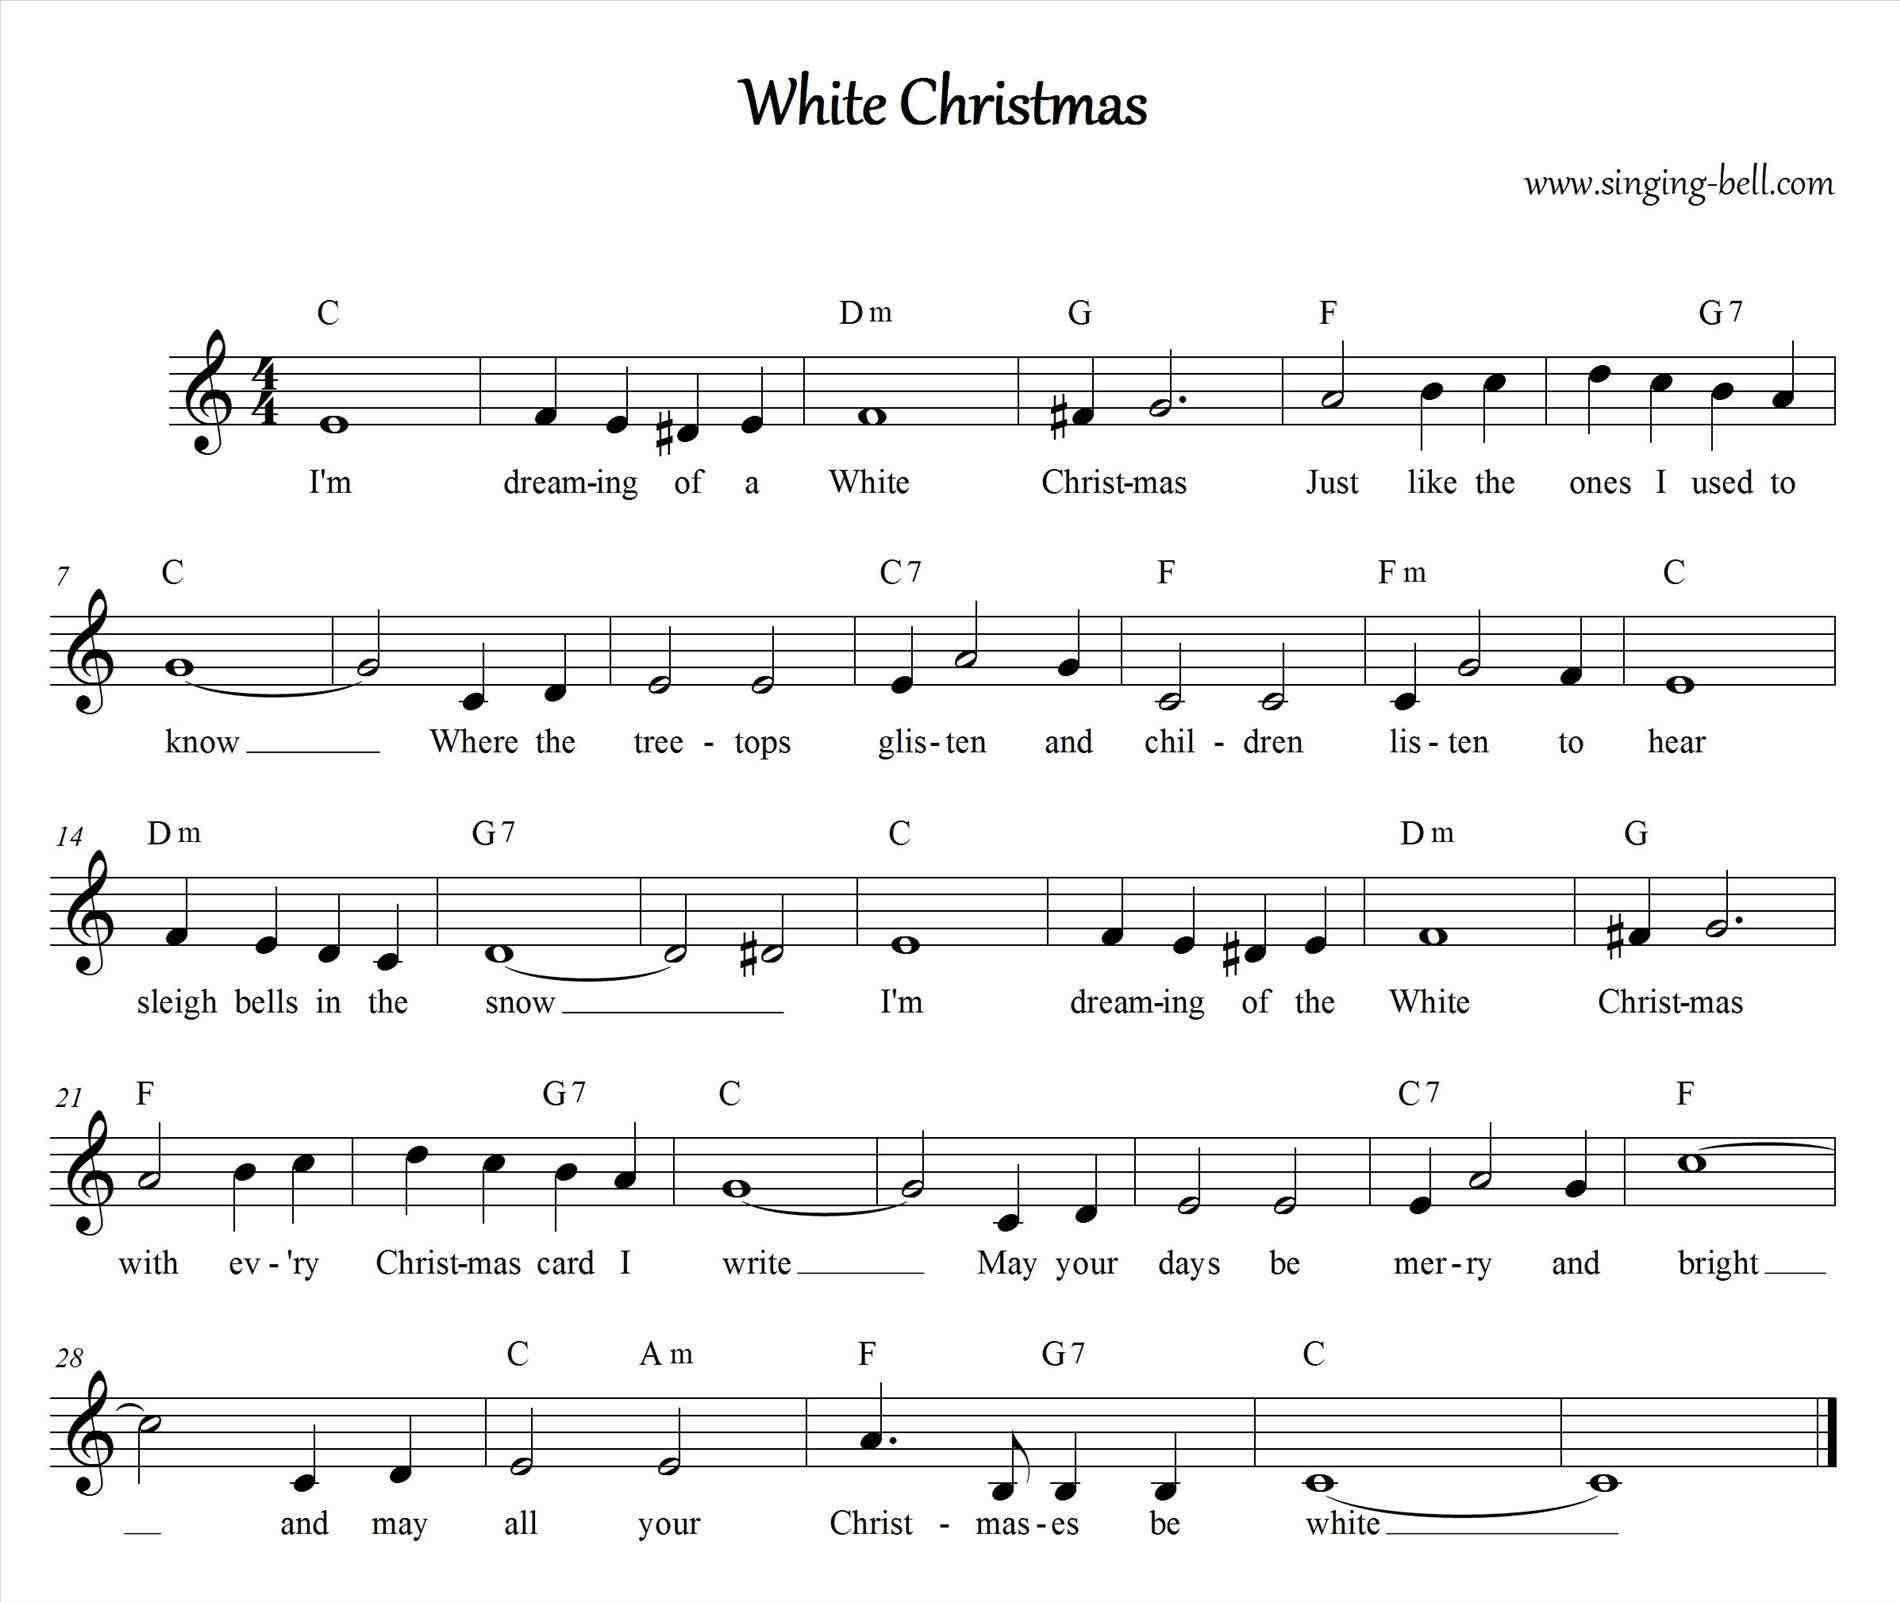 New Post i'm dreaming of a white christmas piano sheet